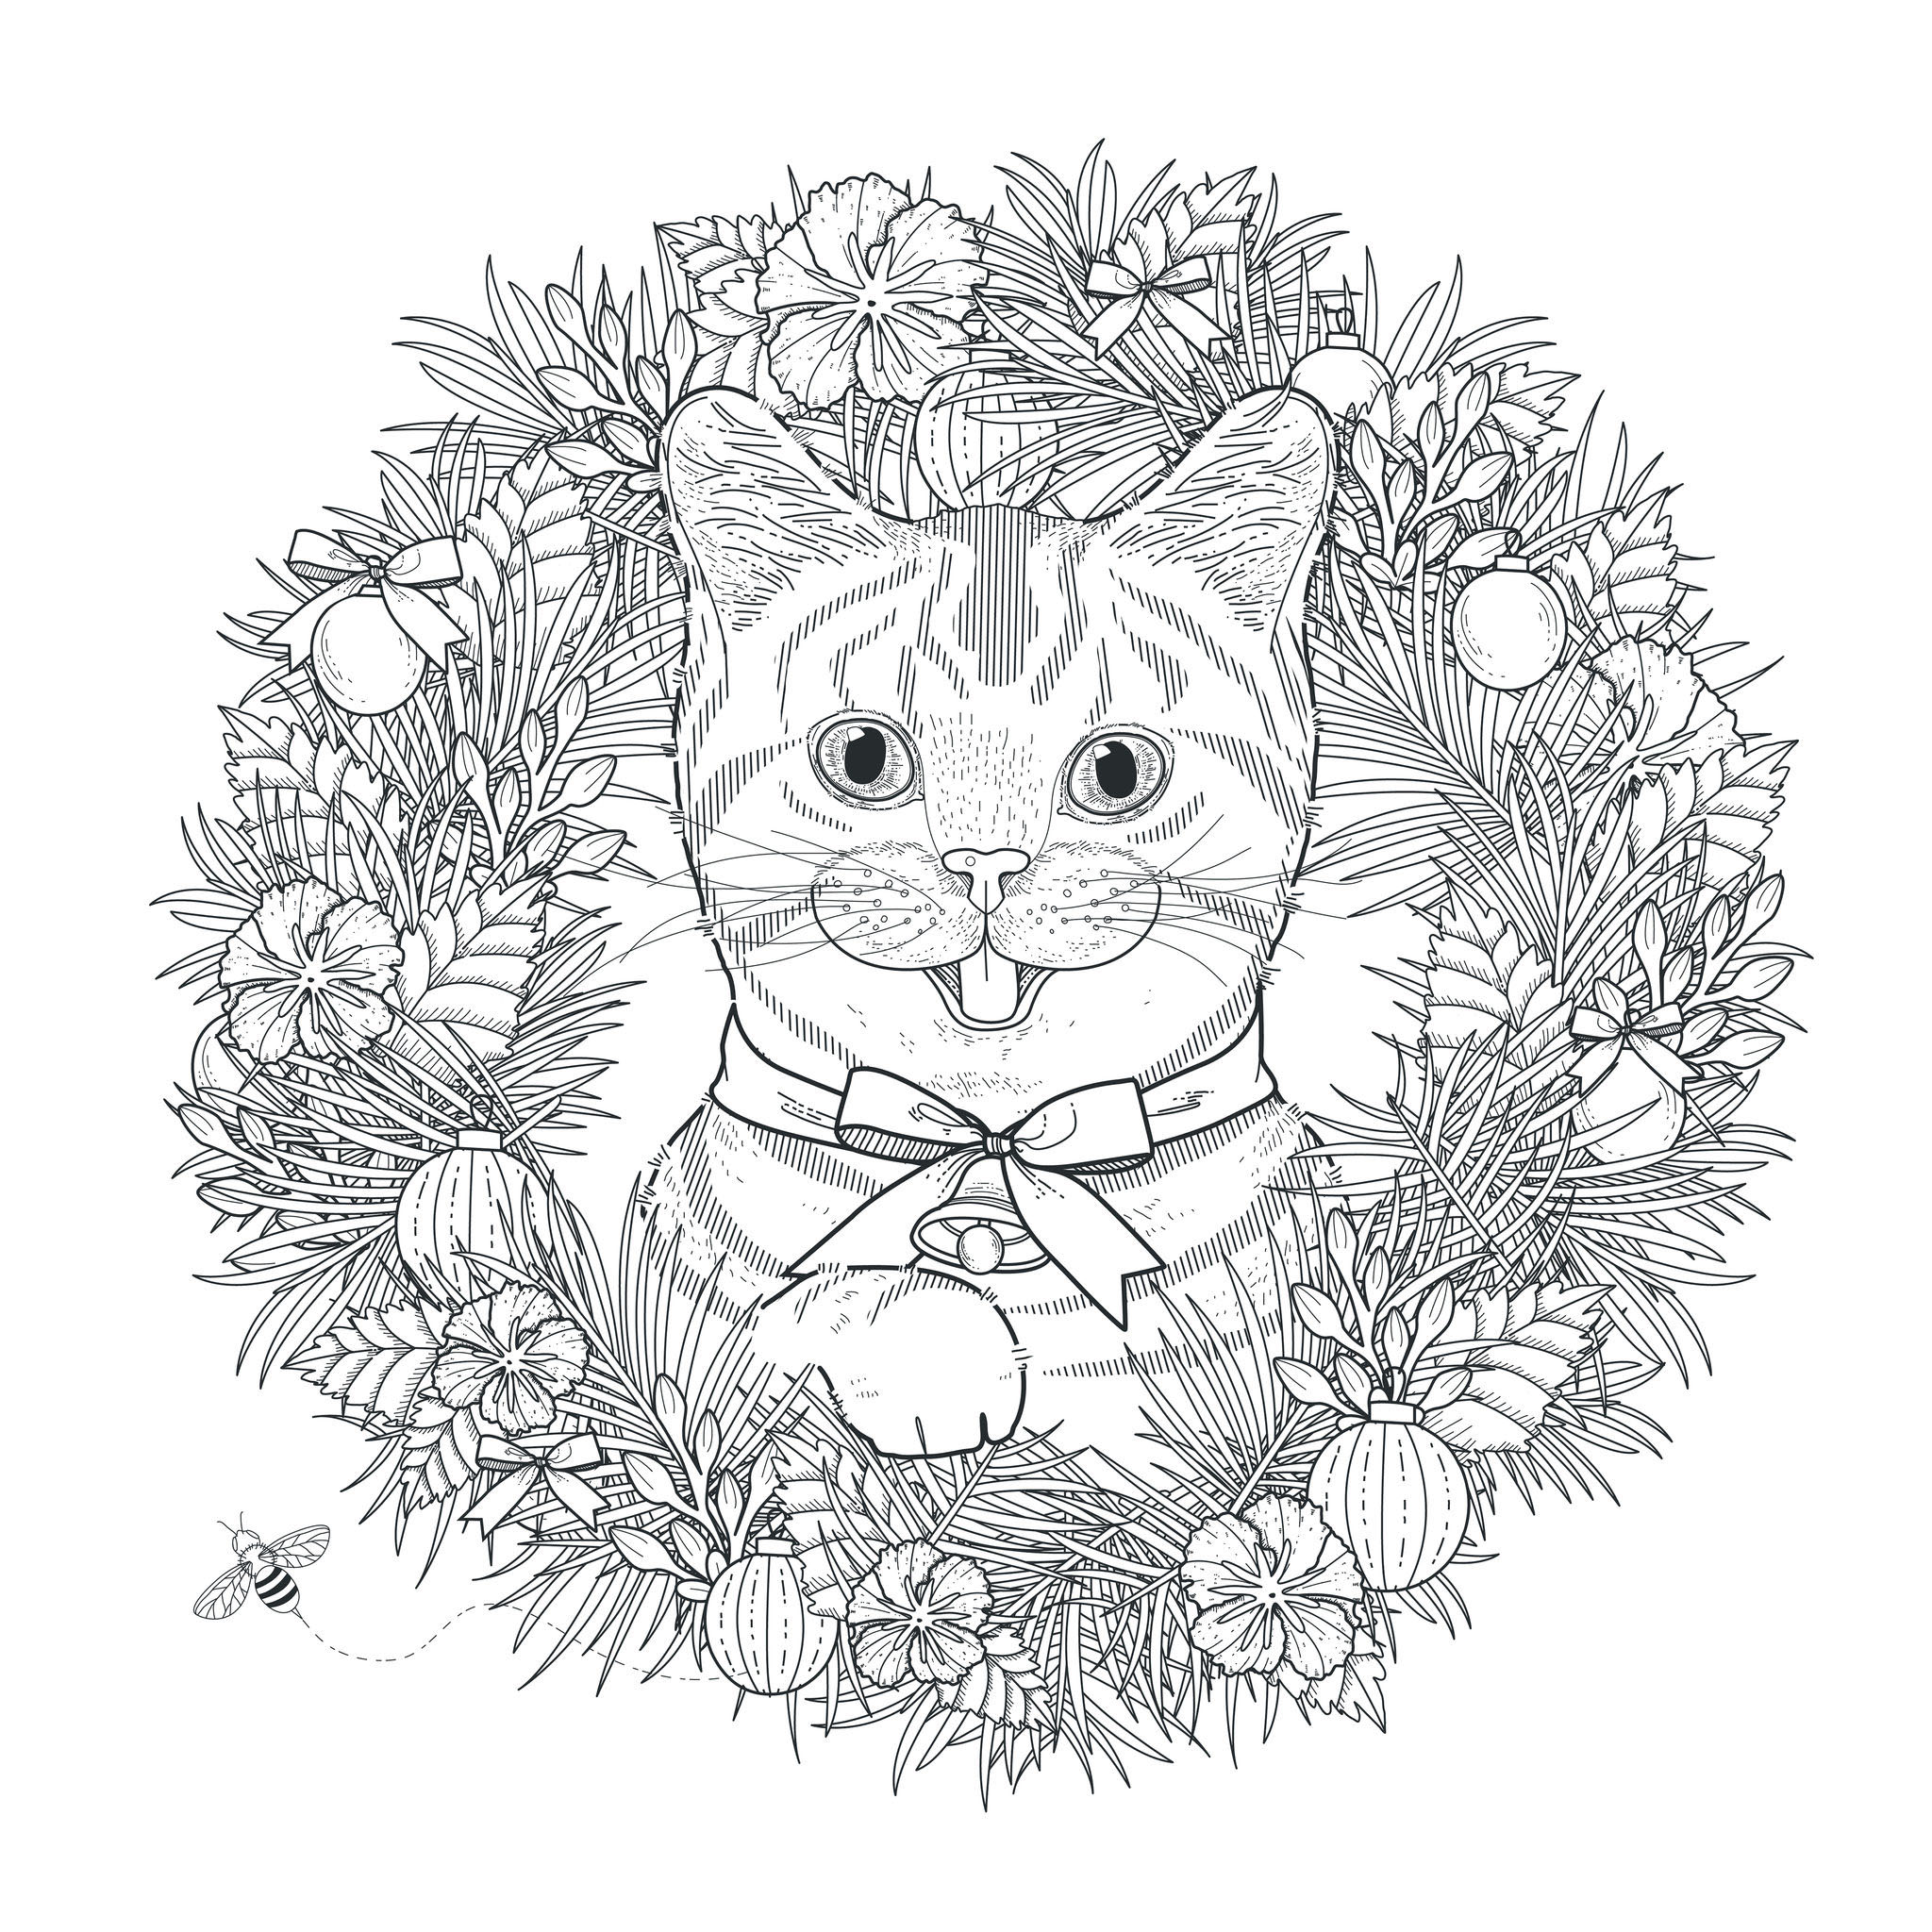 Chat mignon chats coloriages difficiles pour adultes - Coloriage adulte difficile ...